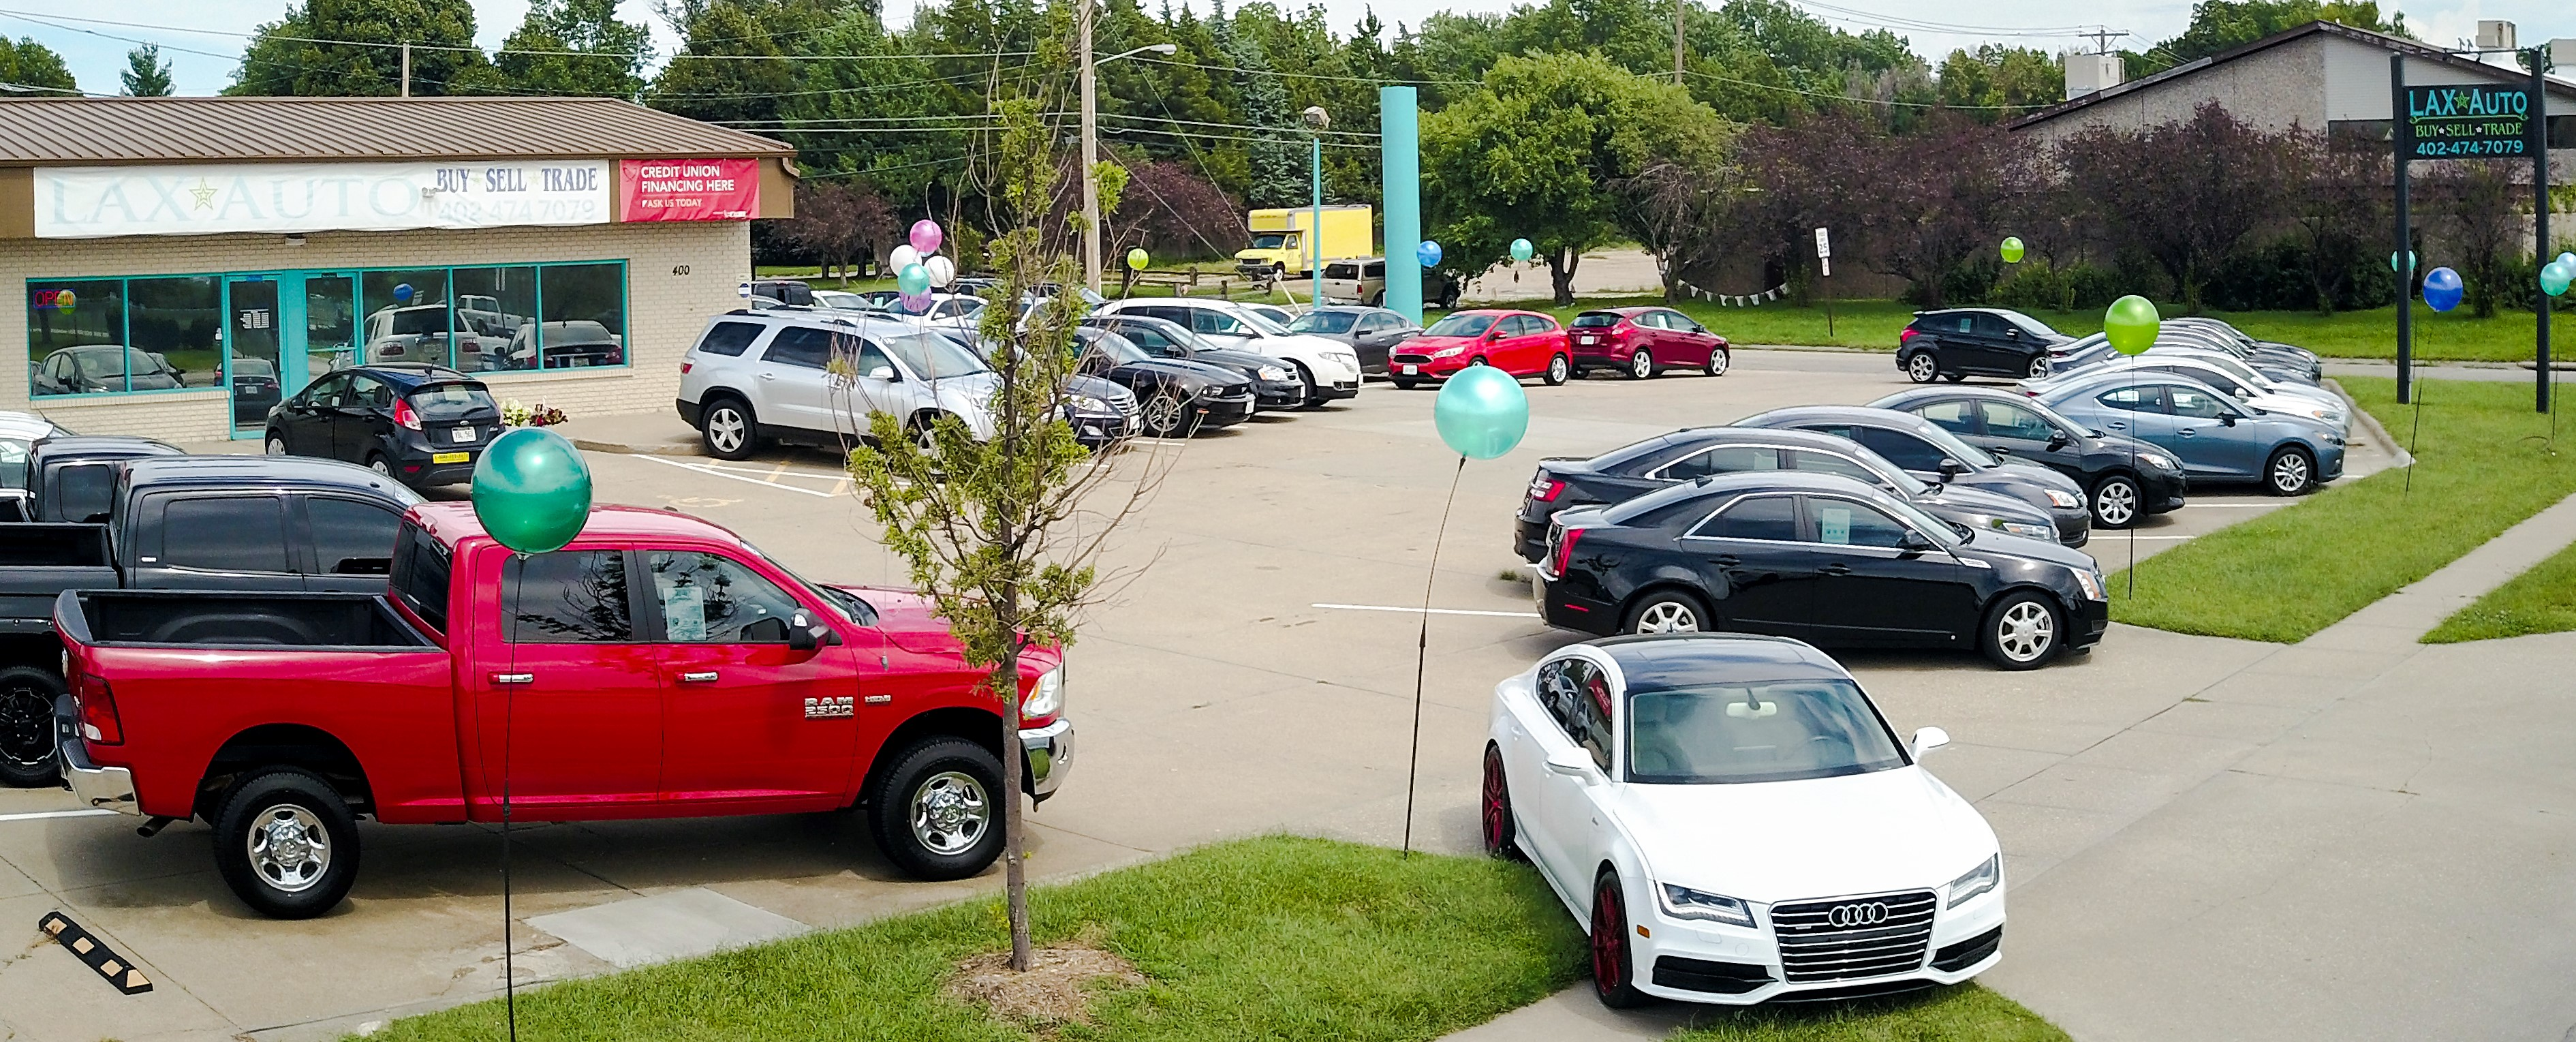 LAX AUTO | Car Dealers at 400 W Cornhusker Hwy - Lincoln NE - Reviews - Photos - Phone Number